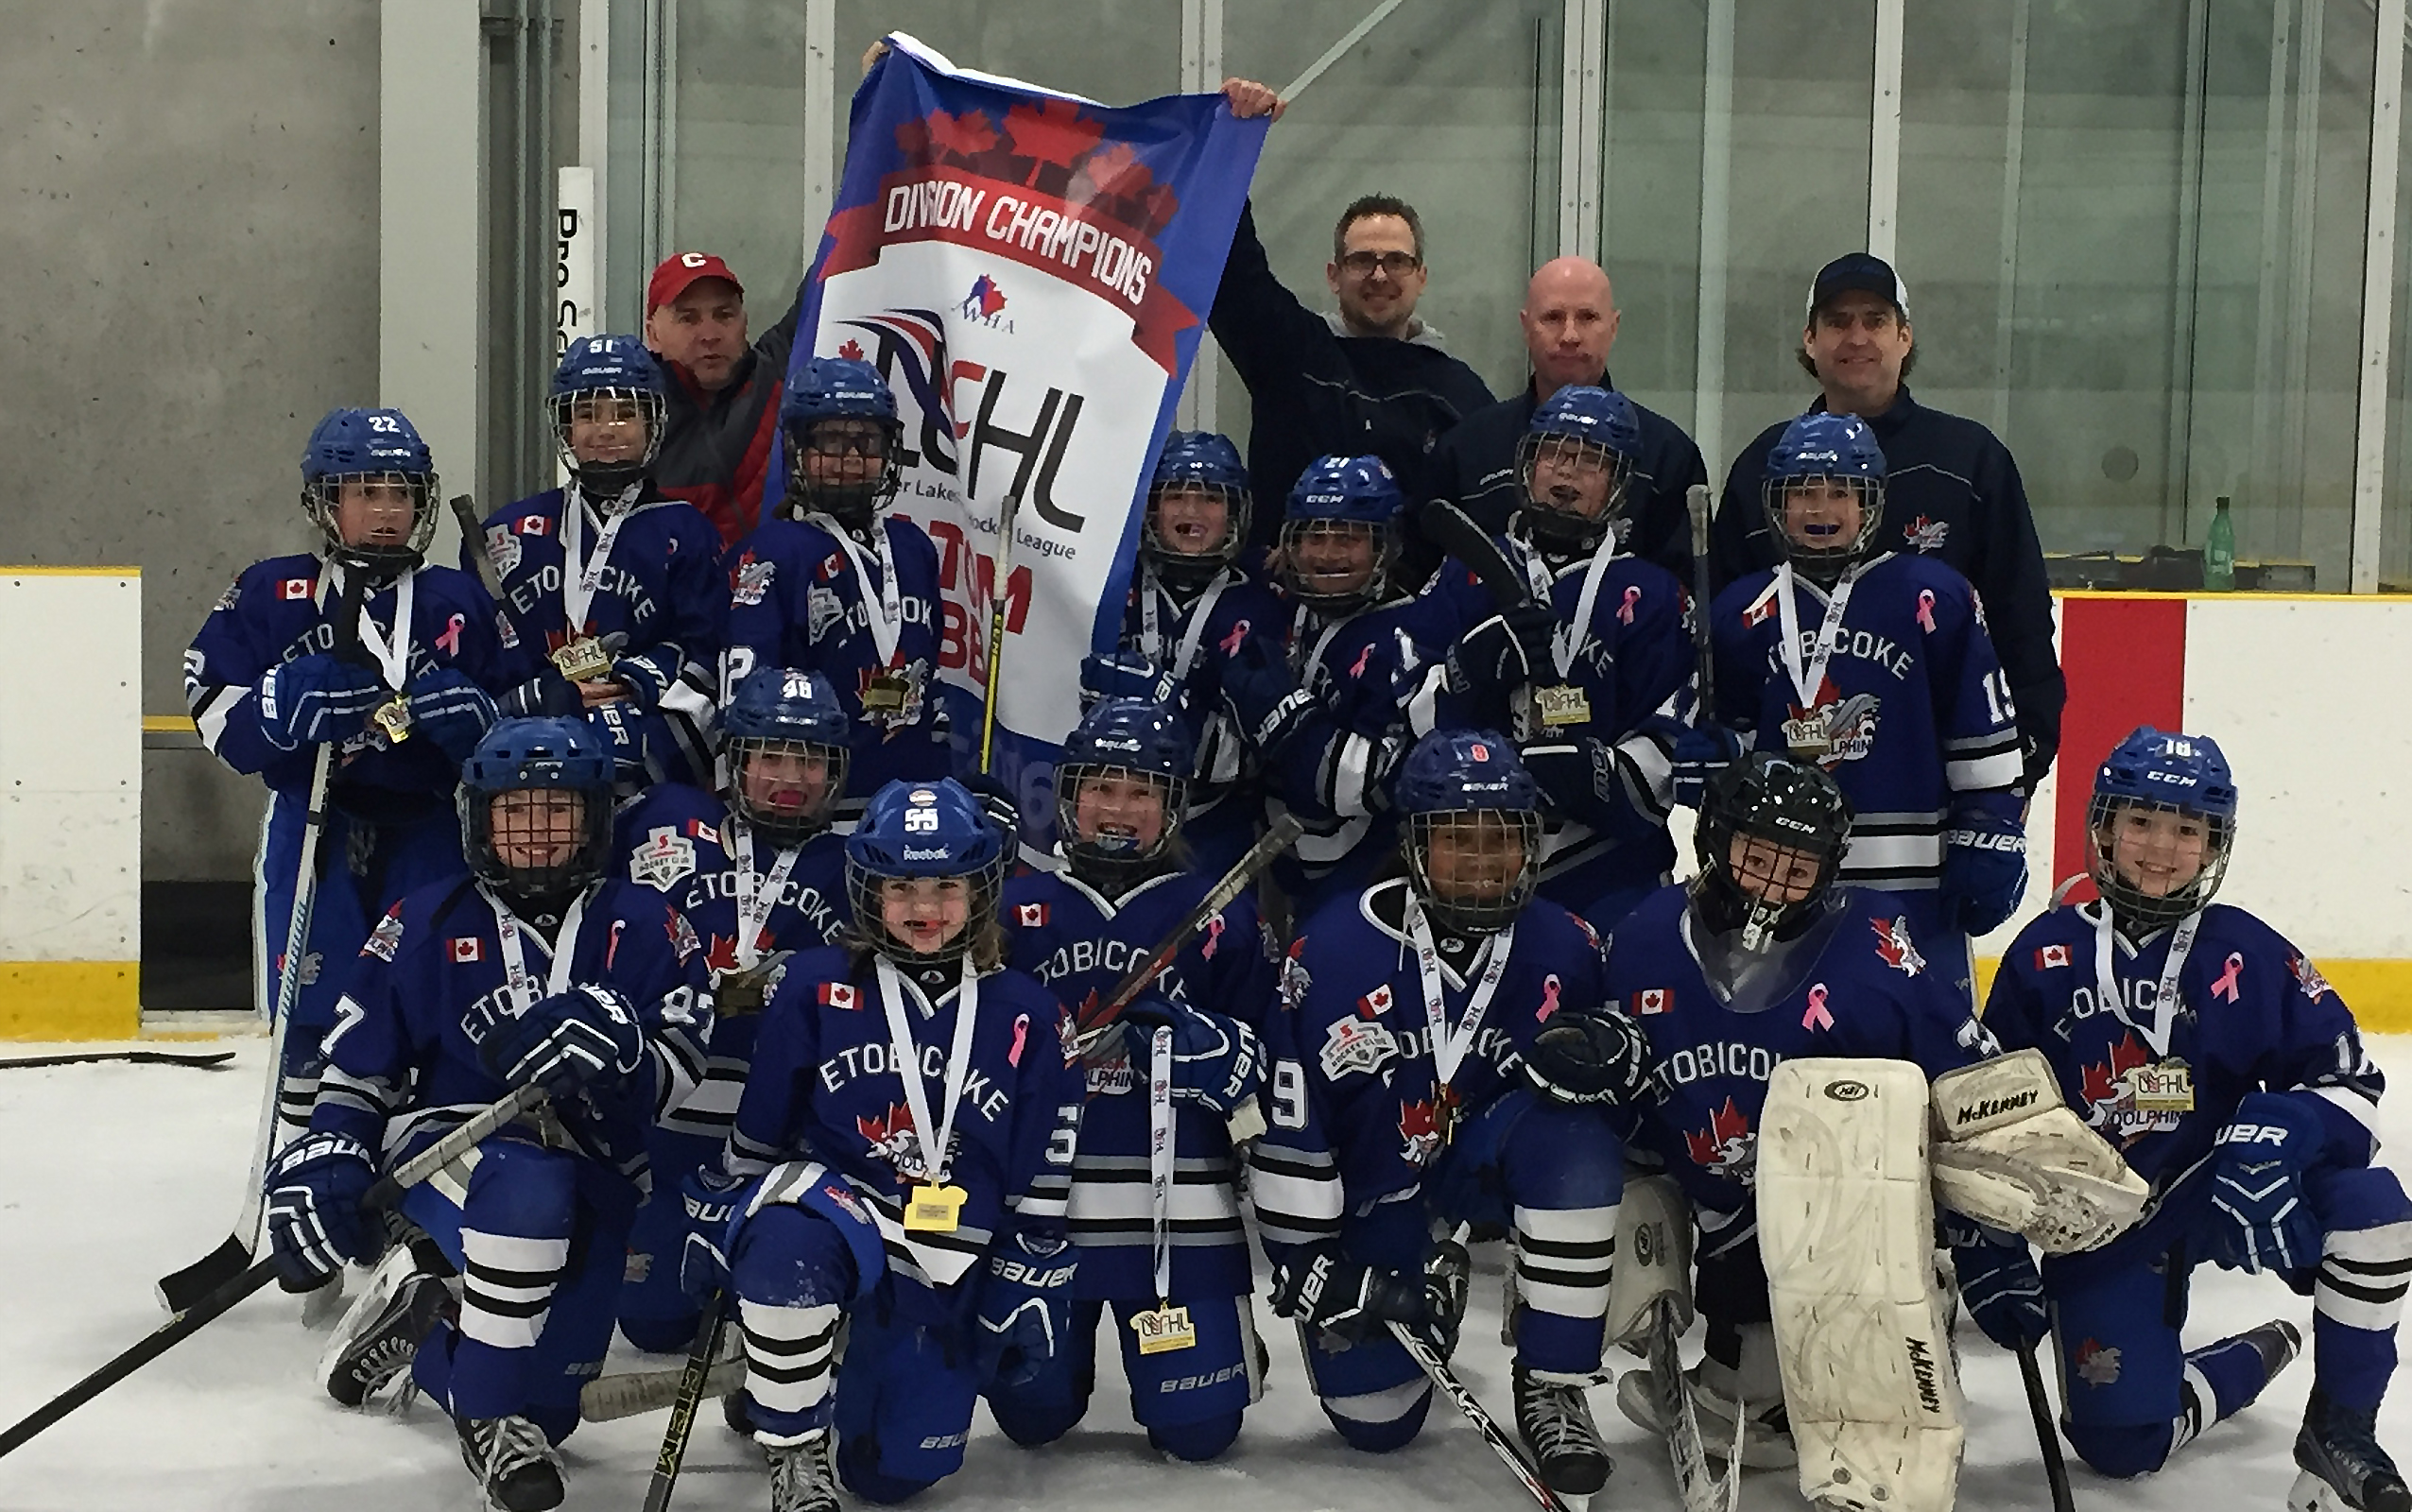 Atom BBs are Lower Lakes Champions